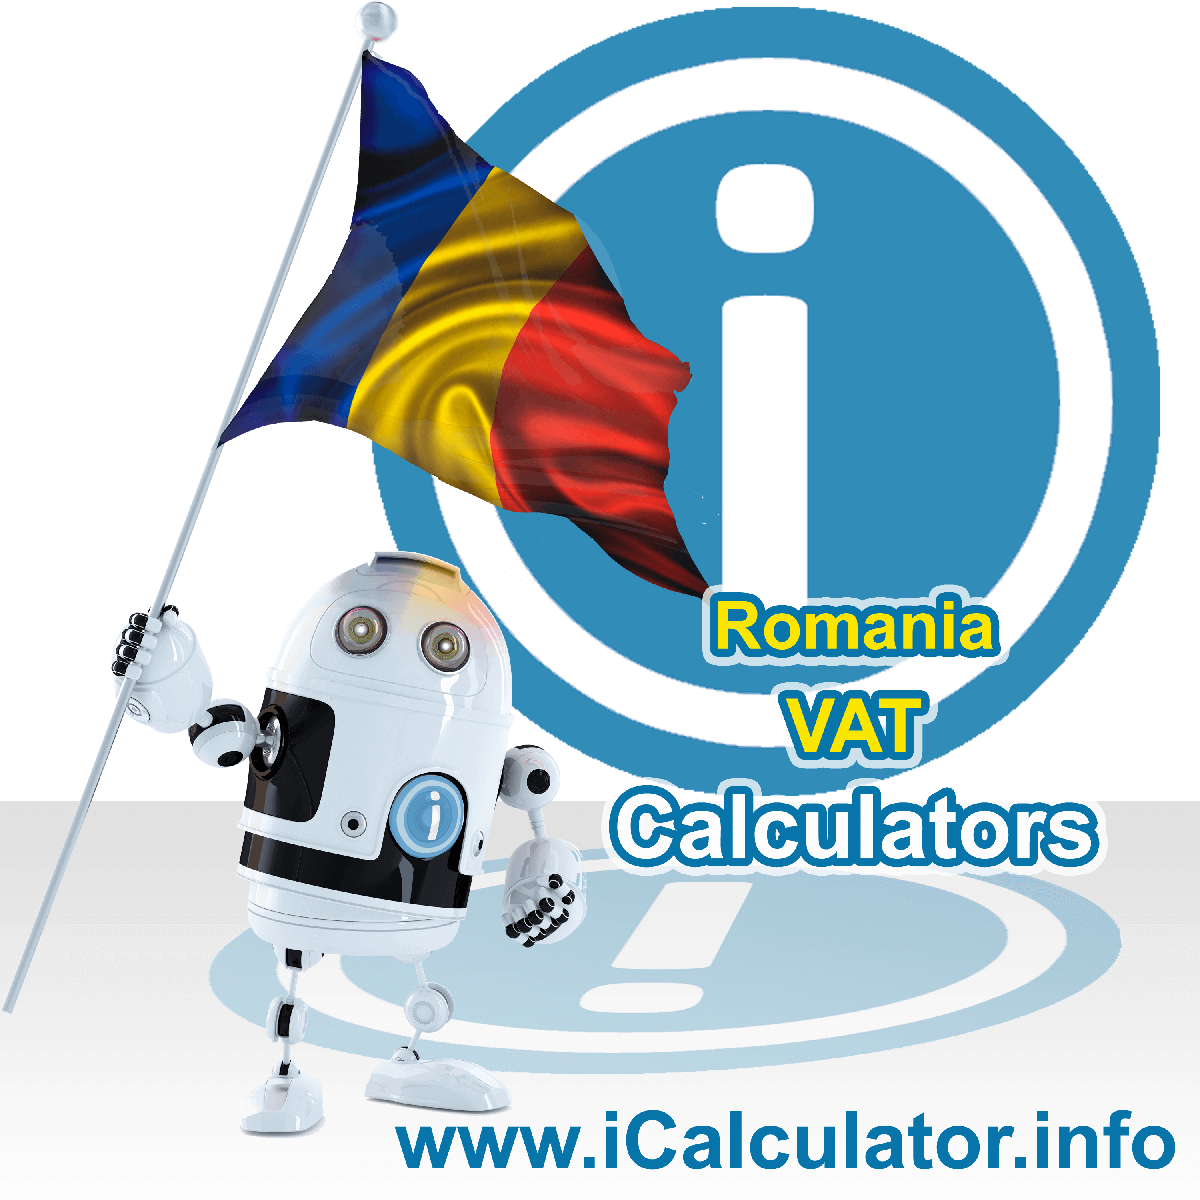 Romania VAT Calculator. This image shows the Romania flag and information relating to the VAT formula used for calculating Value Added Tax in Romania using the Romania VAT Calculator in 2020